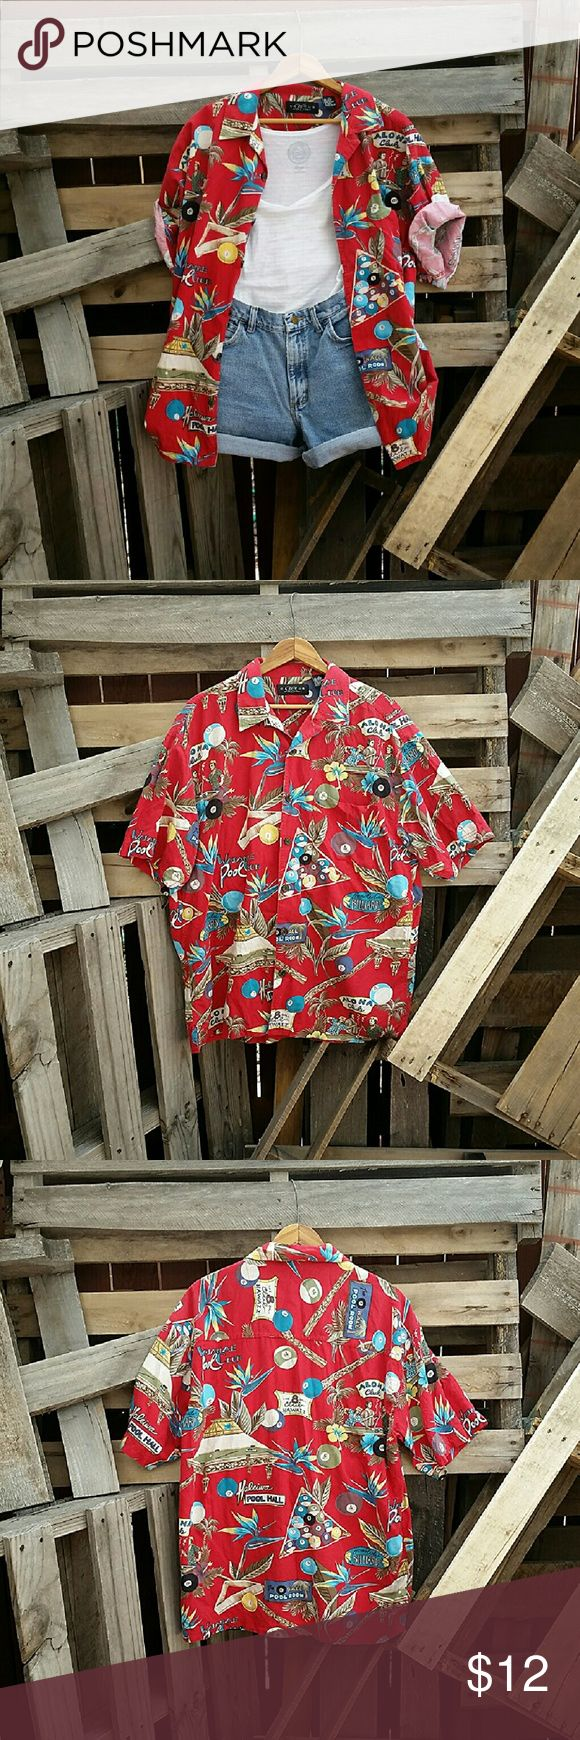 Vintage '90s Medium Stoner Grunge Hawaiian Shirt This vintage hawaiian shirt is…